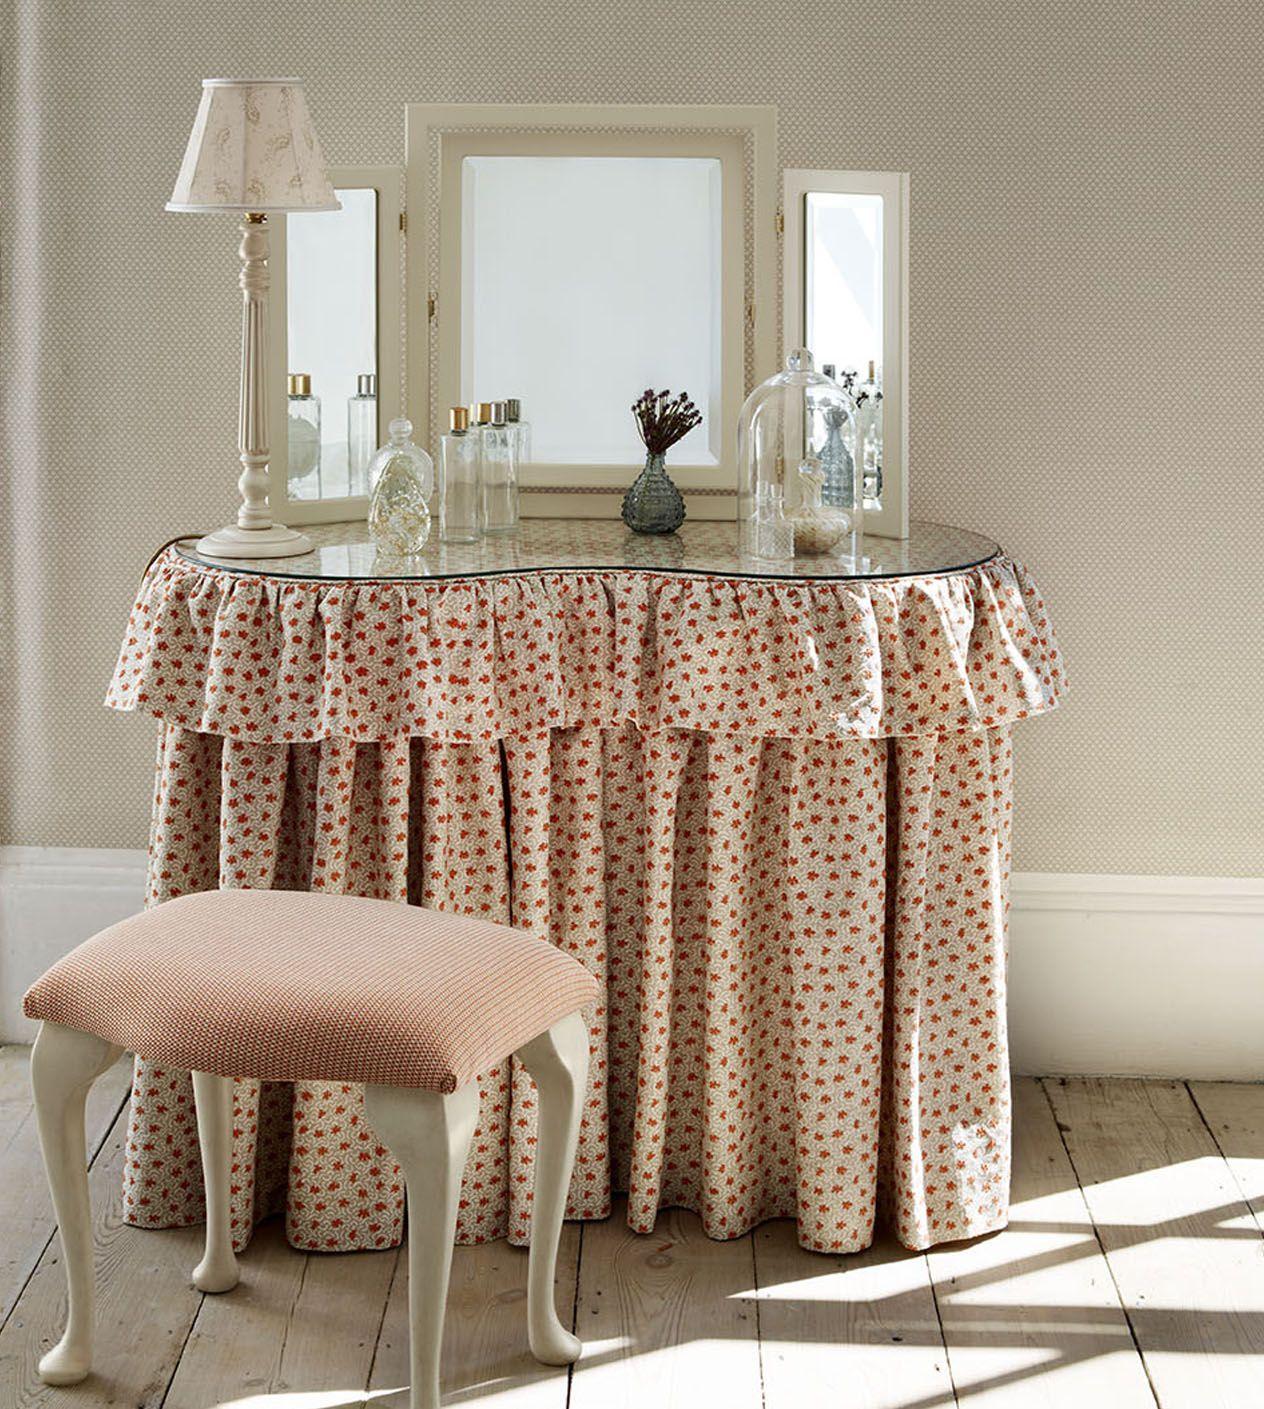 Dressing table skirts soft furnishings covers for for Vanity dressing table